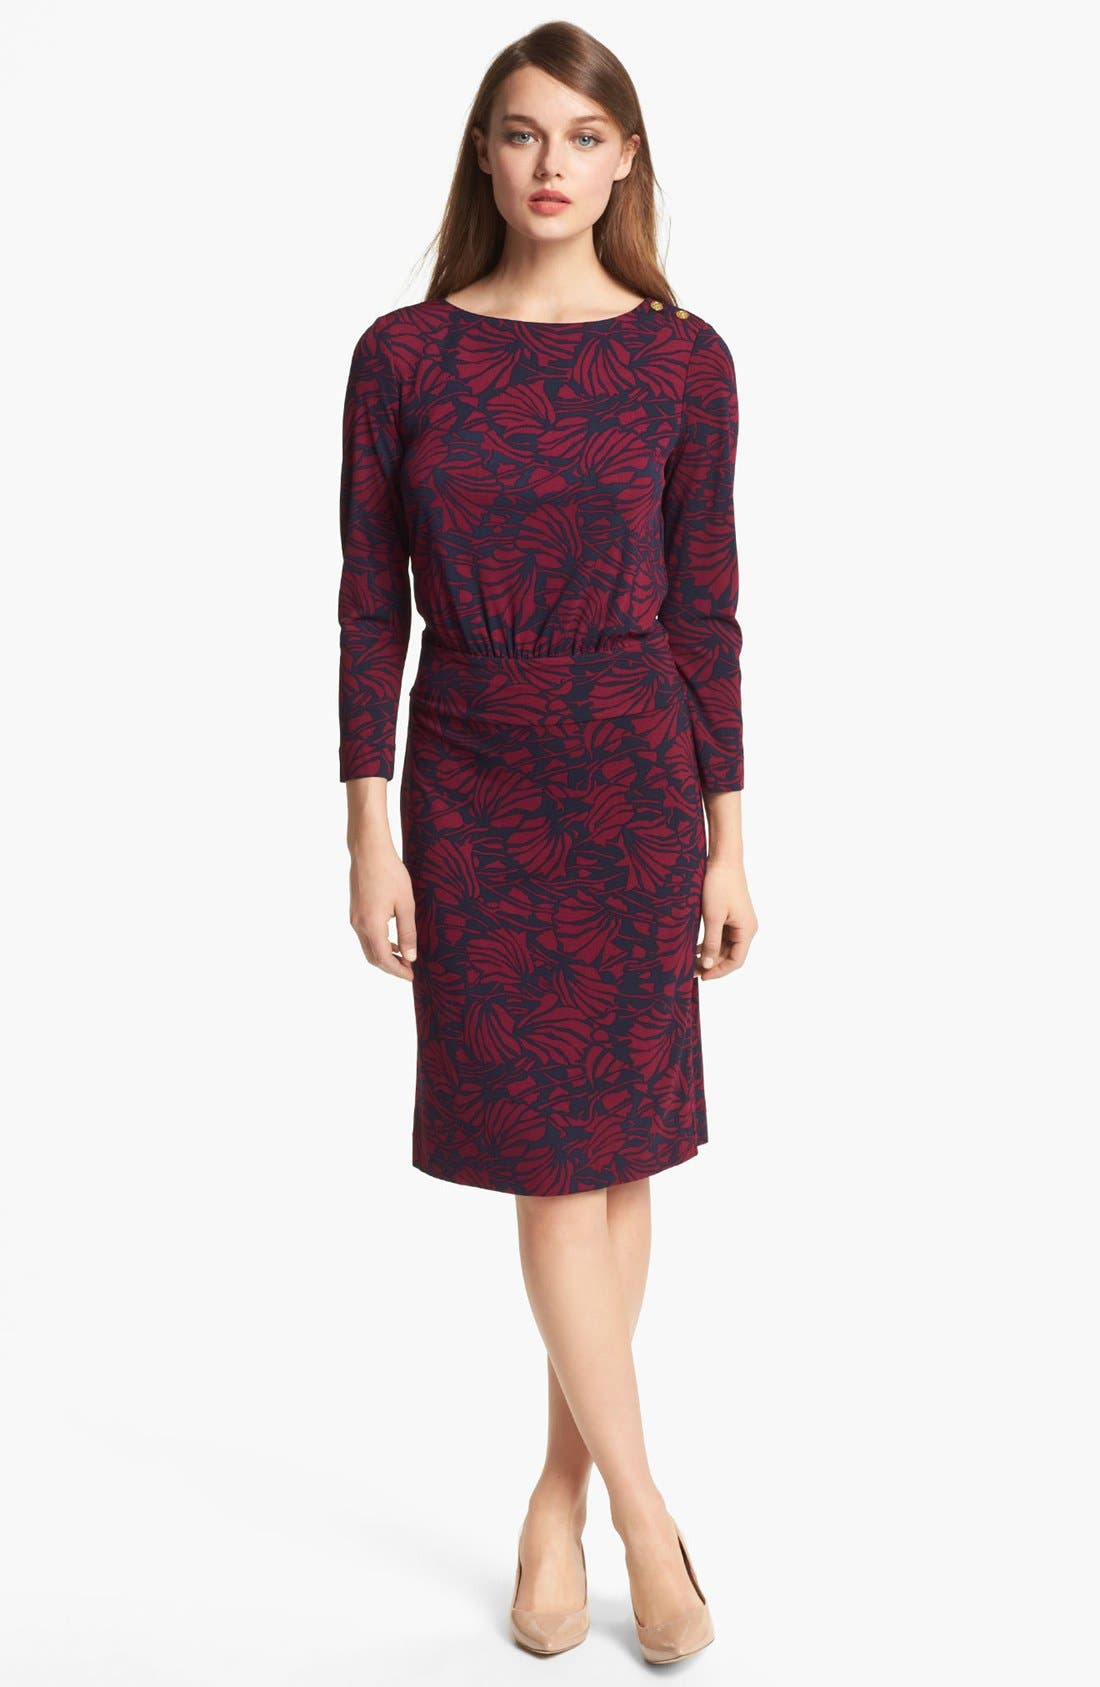 Main Image - Tory Burch 'Etta' Print Blouson Dress